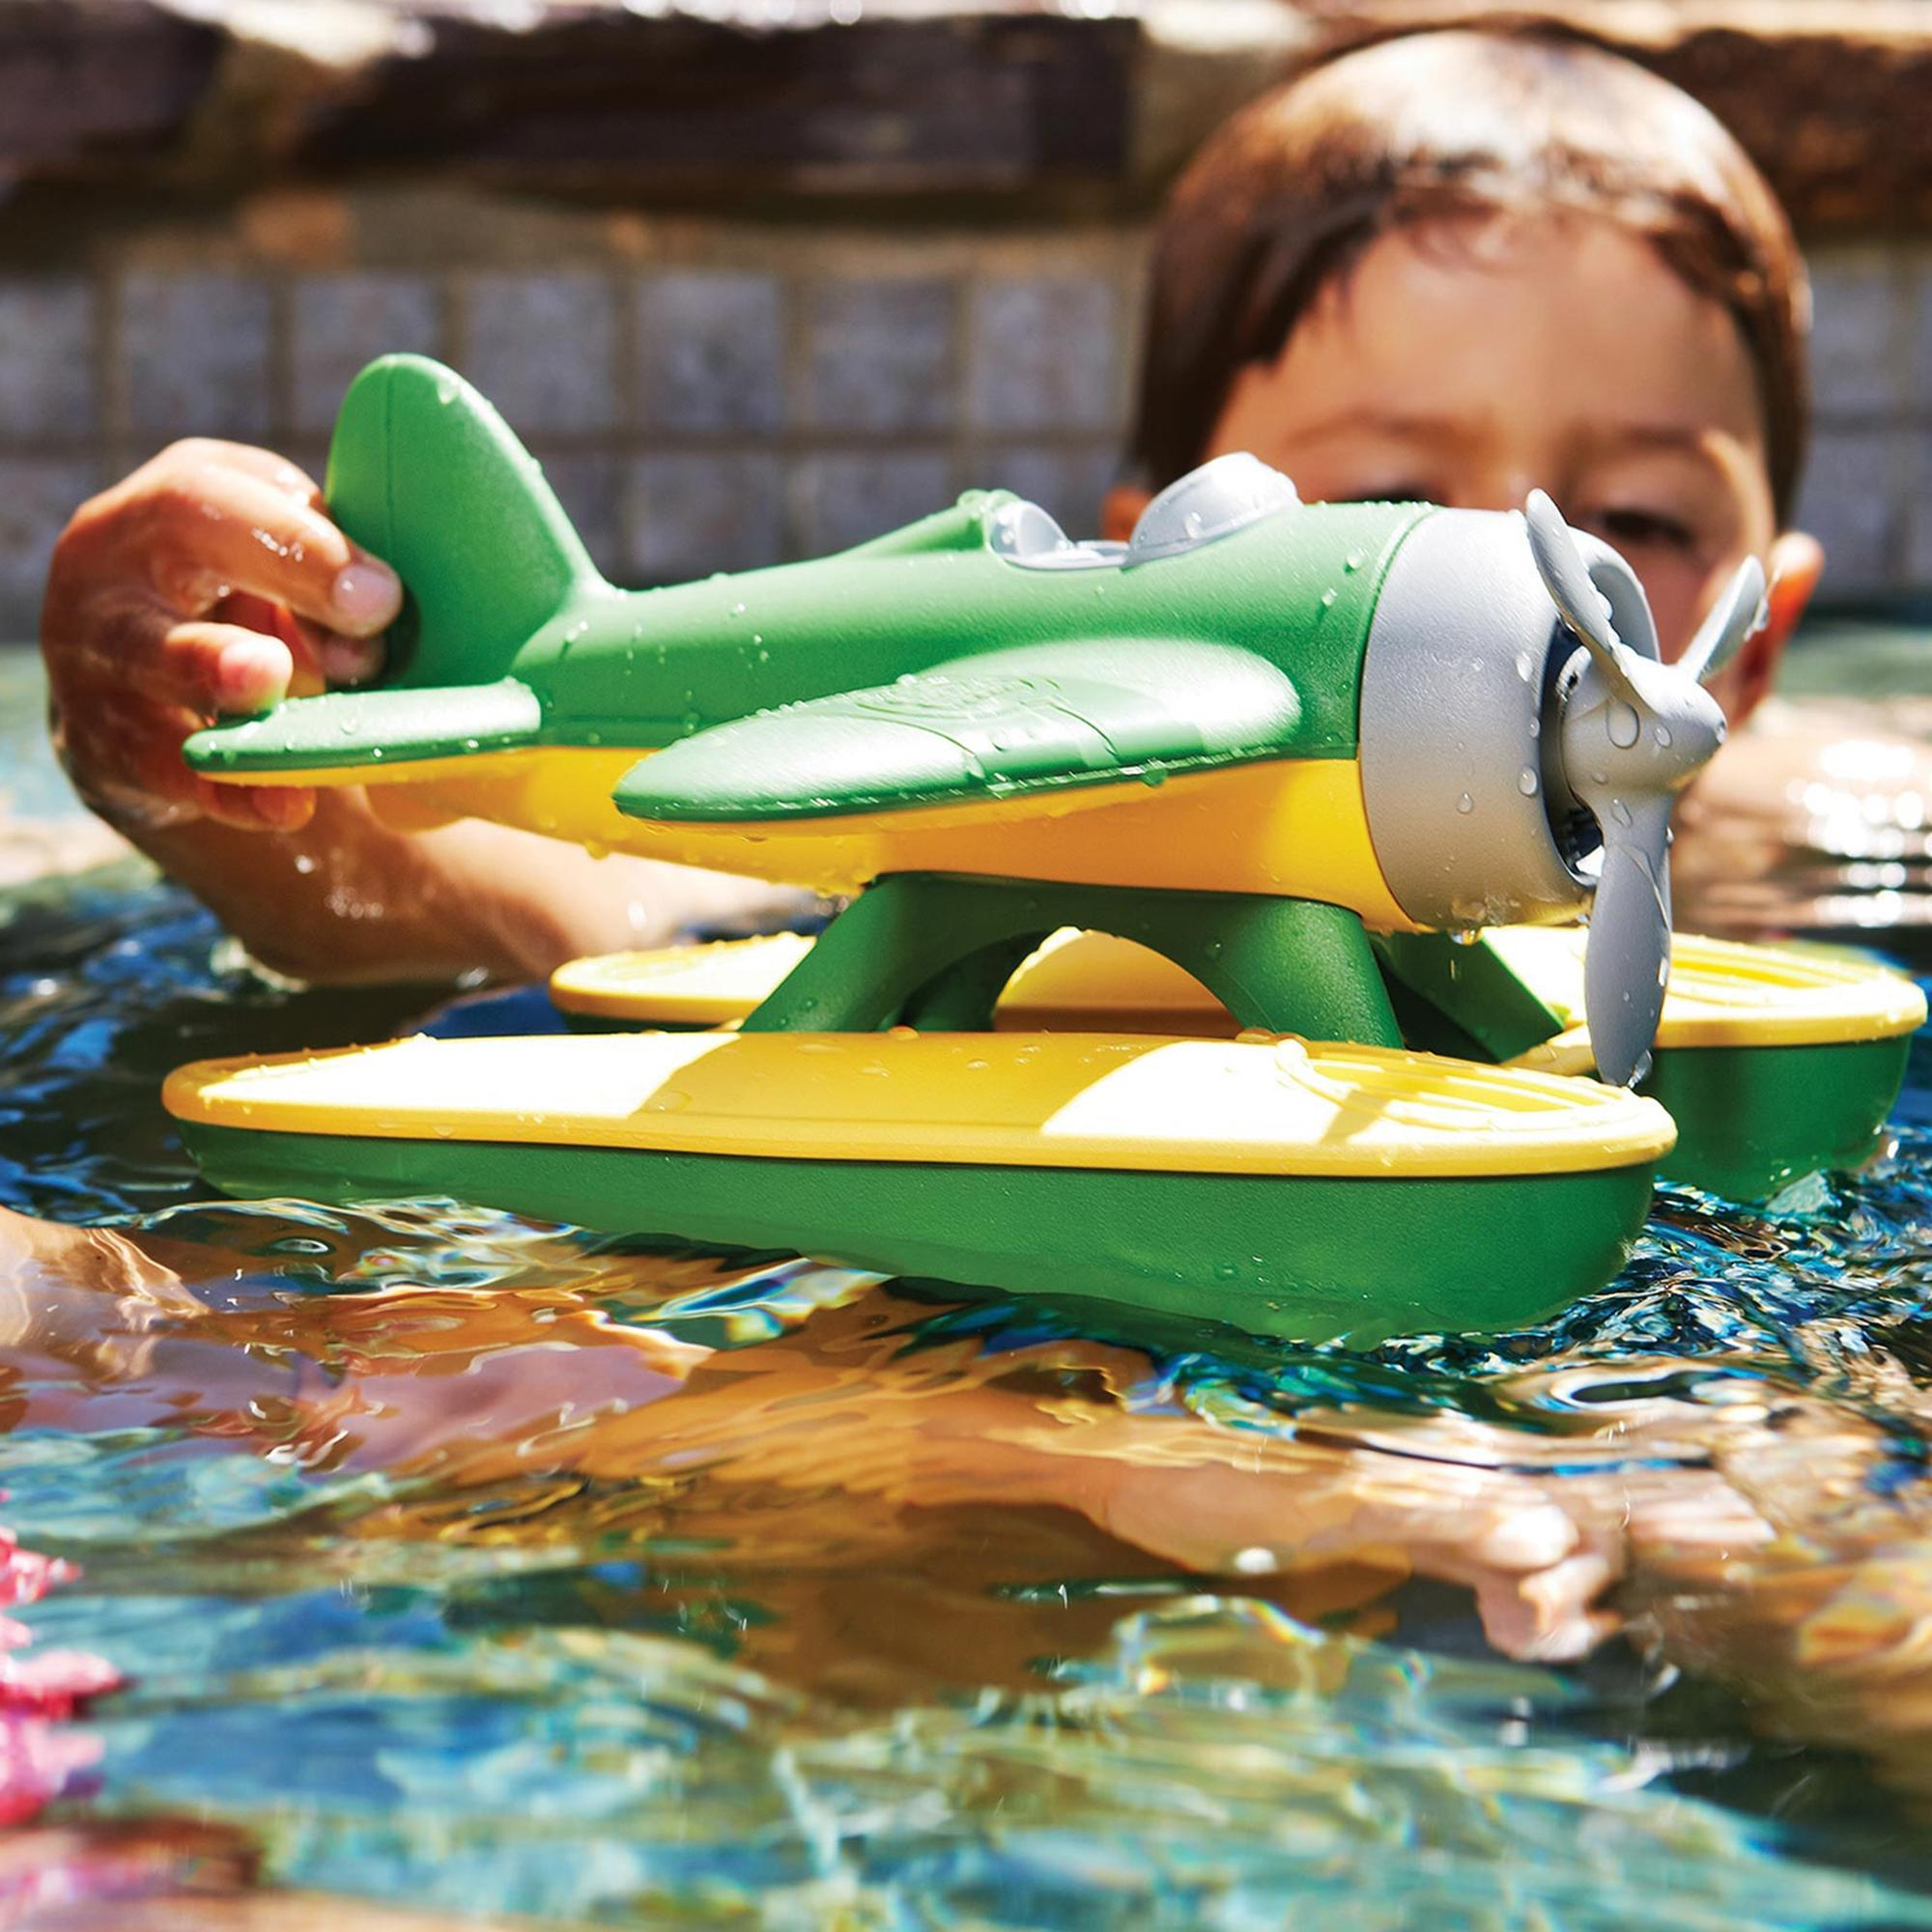 Boy playing with green and yellow seaplane as it floats on water.